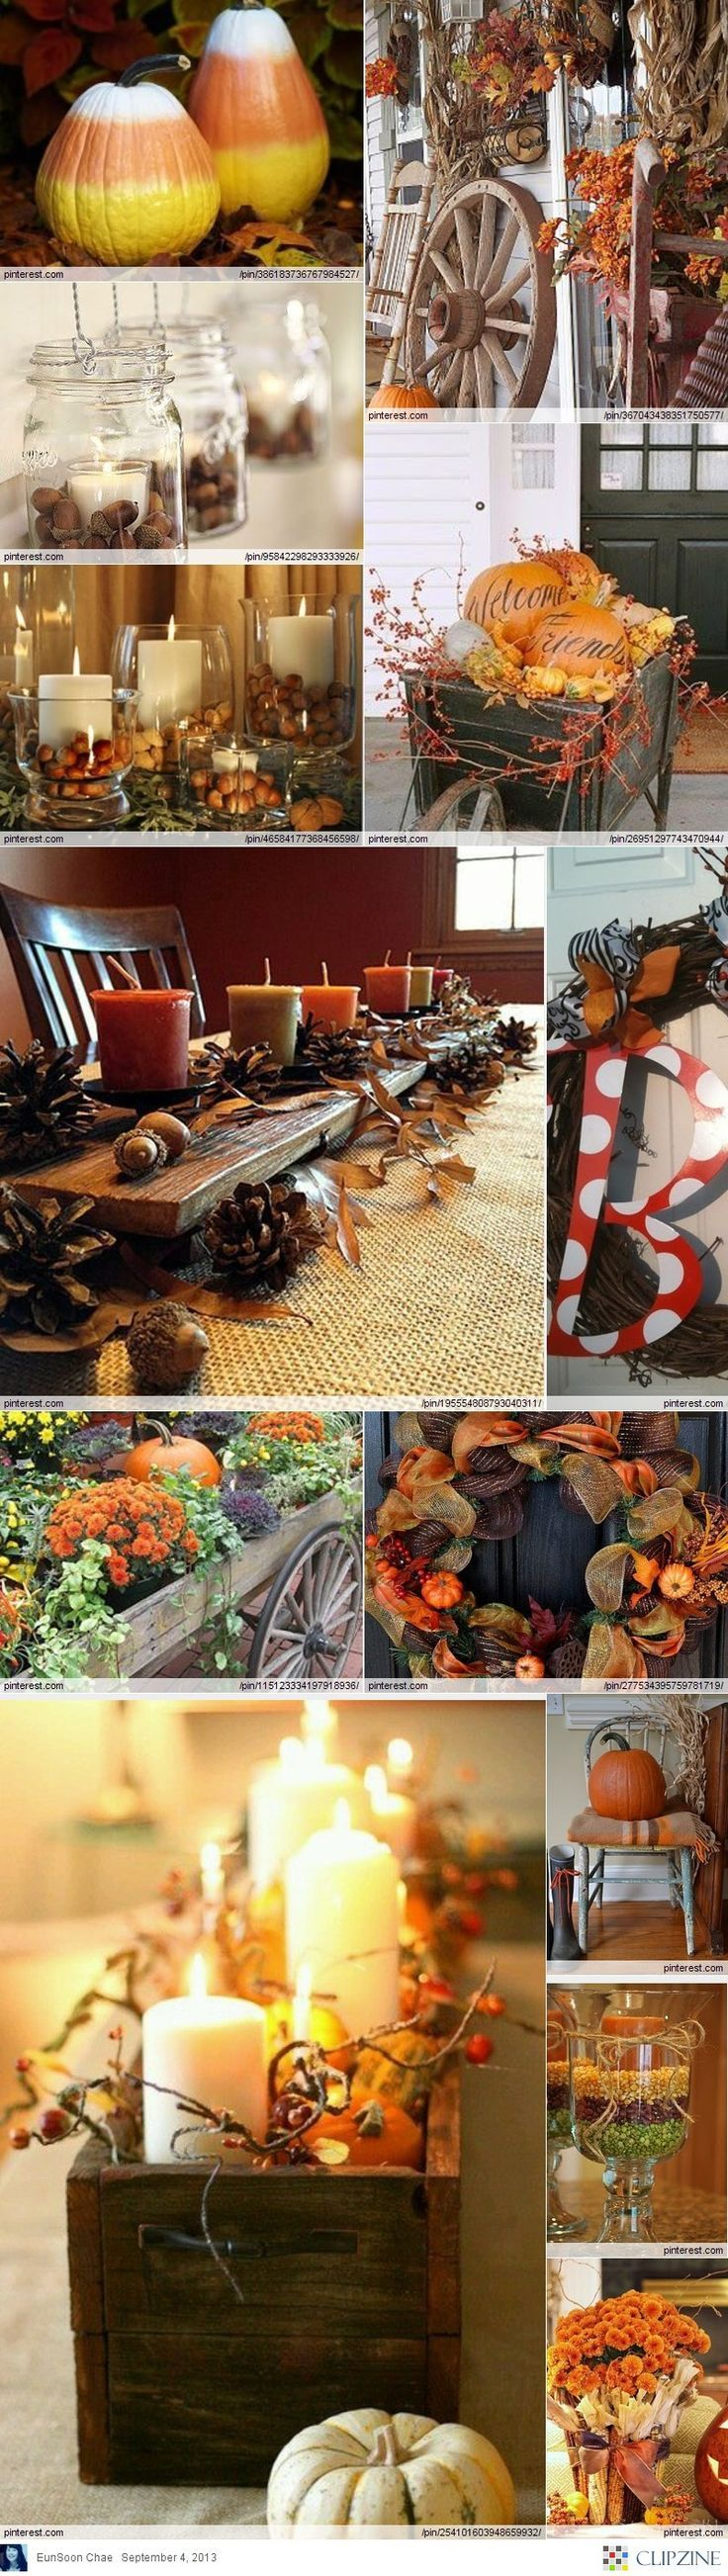 Fall Decorating Idea. Front porch ideas, tablescapes, wreaths, mantel ideas. Lots to adore and fun Autumn ideas.